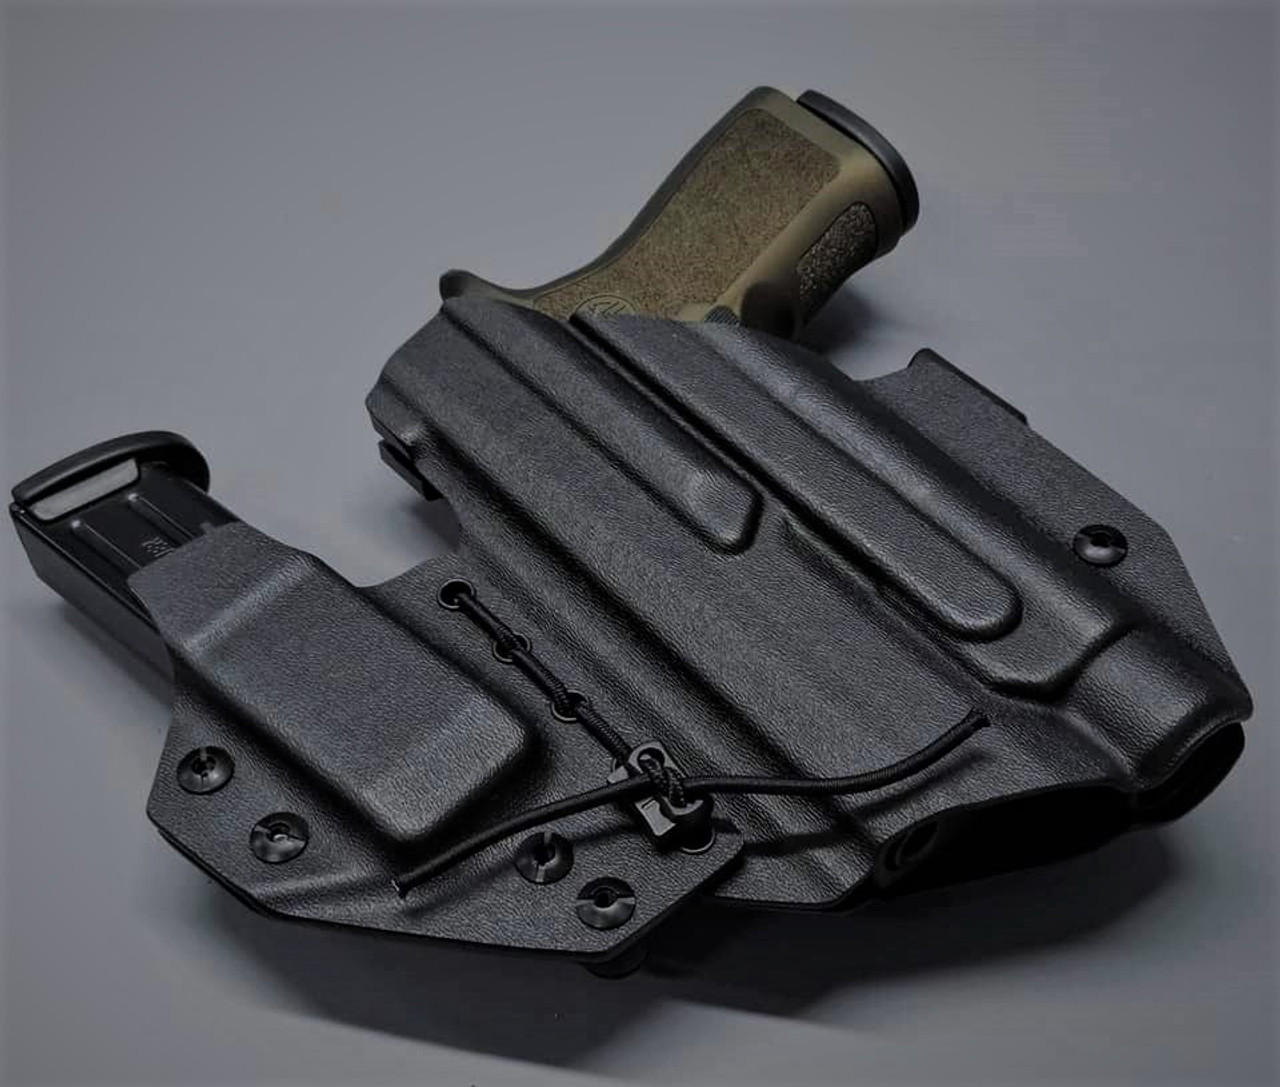 Sig P320 TLR1 Flexible Appendix Carry Rig